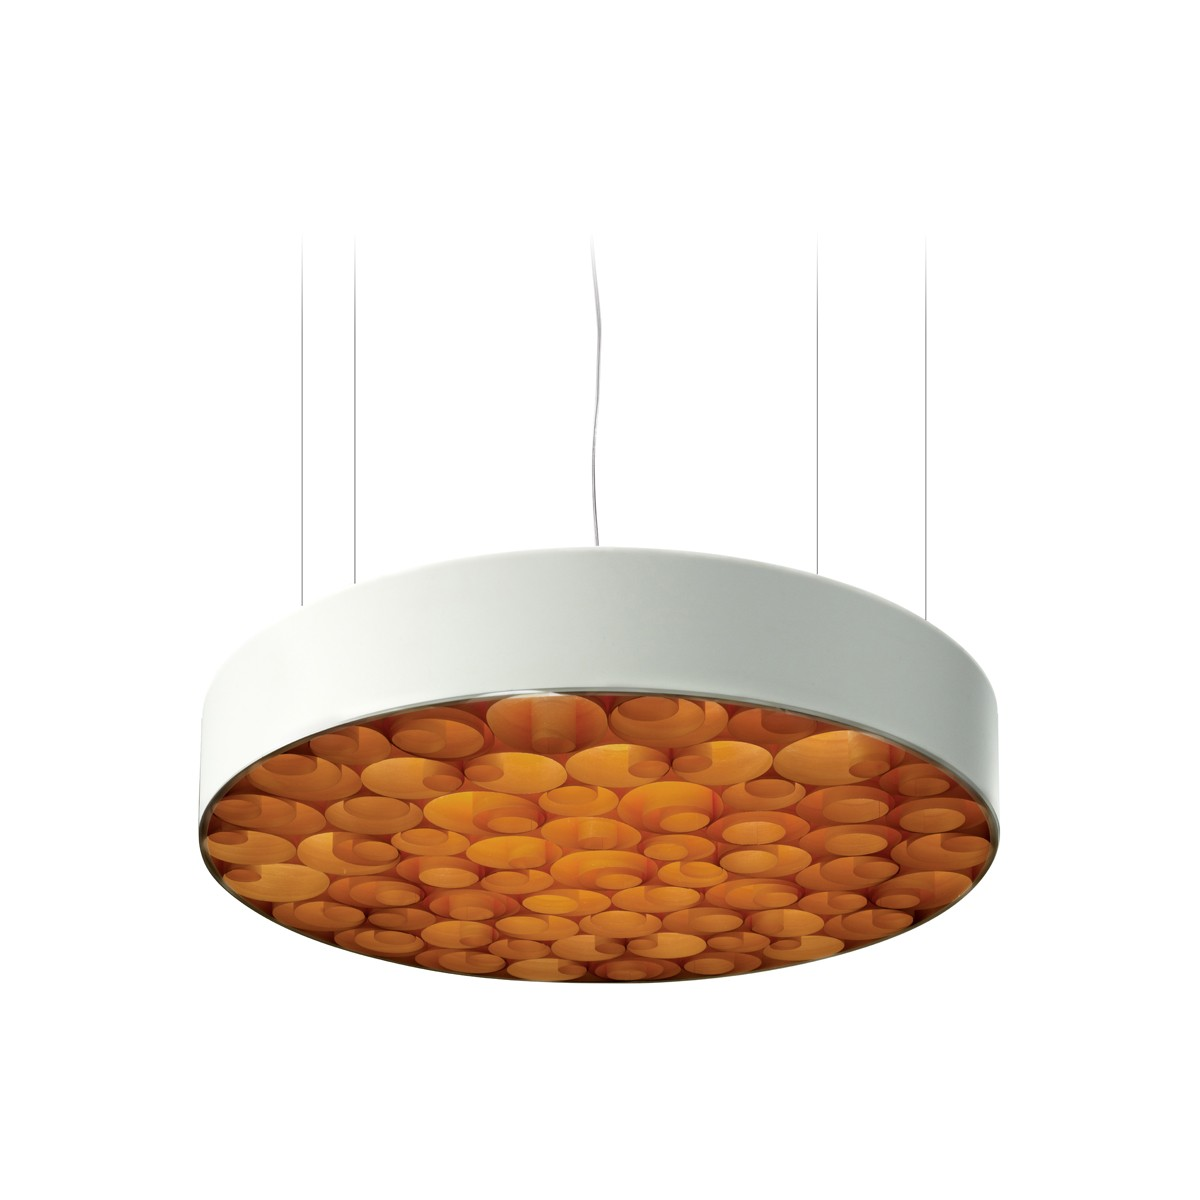 LZF Lamps Spiro Medium LED Pendelleuchte, äußerer Schirm: weiß, innen: orange